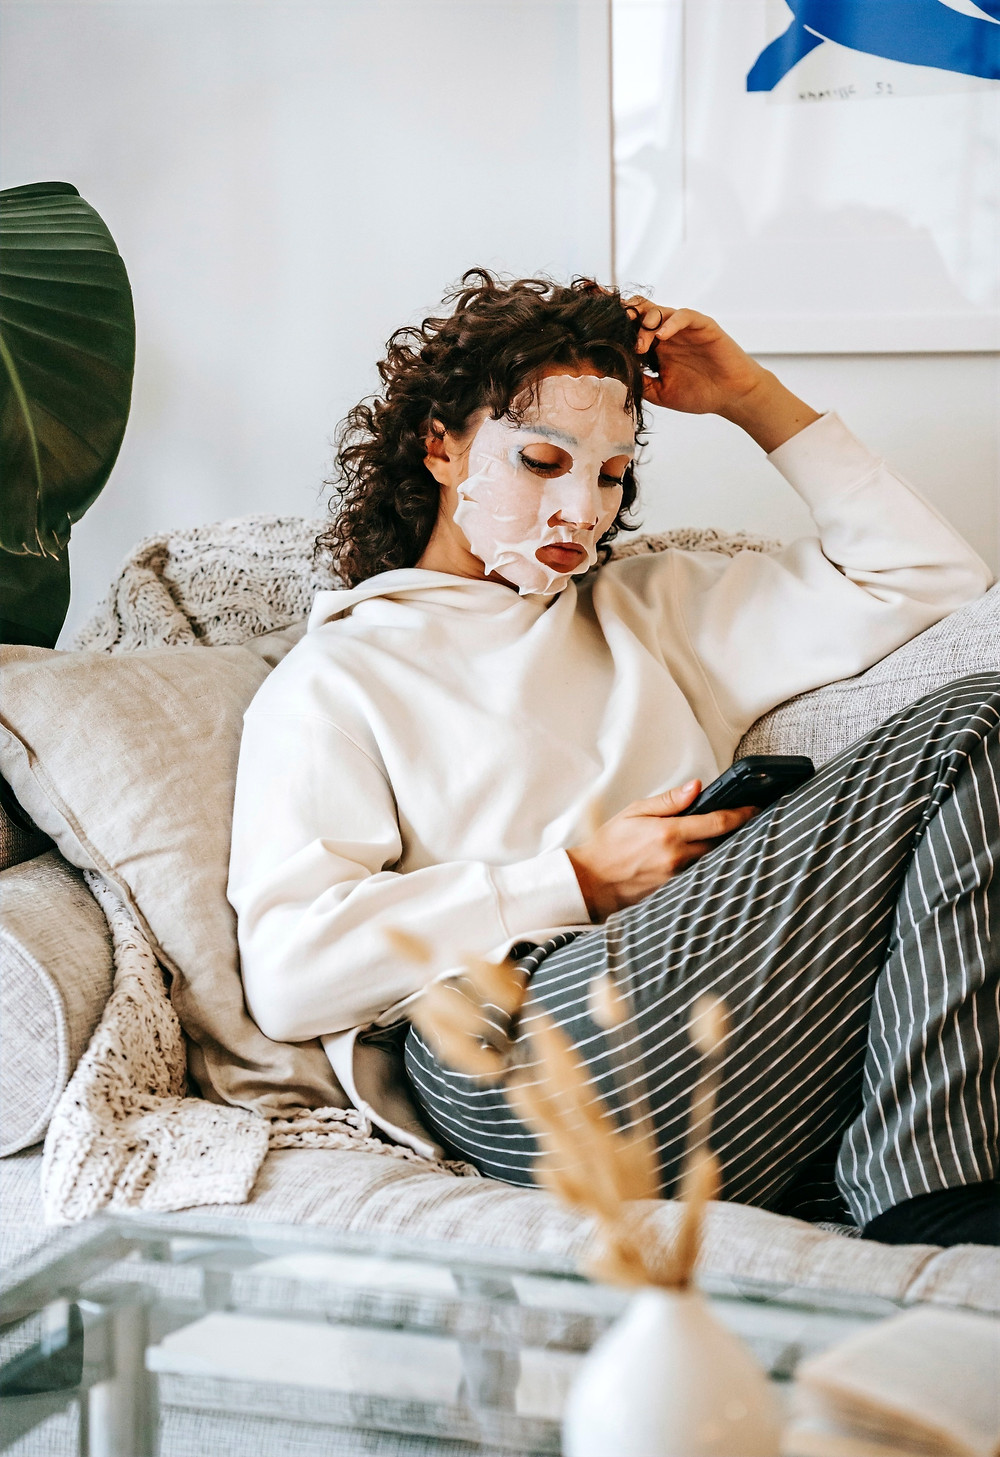 A person wearing a hydrating sheet mask checks their phone while lounging on a couch.